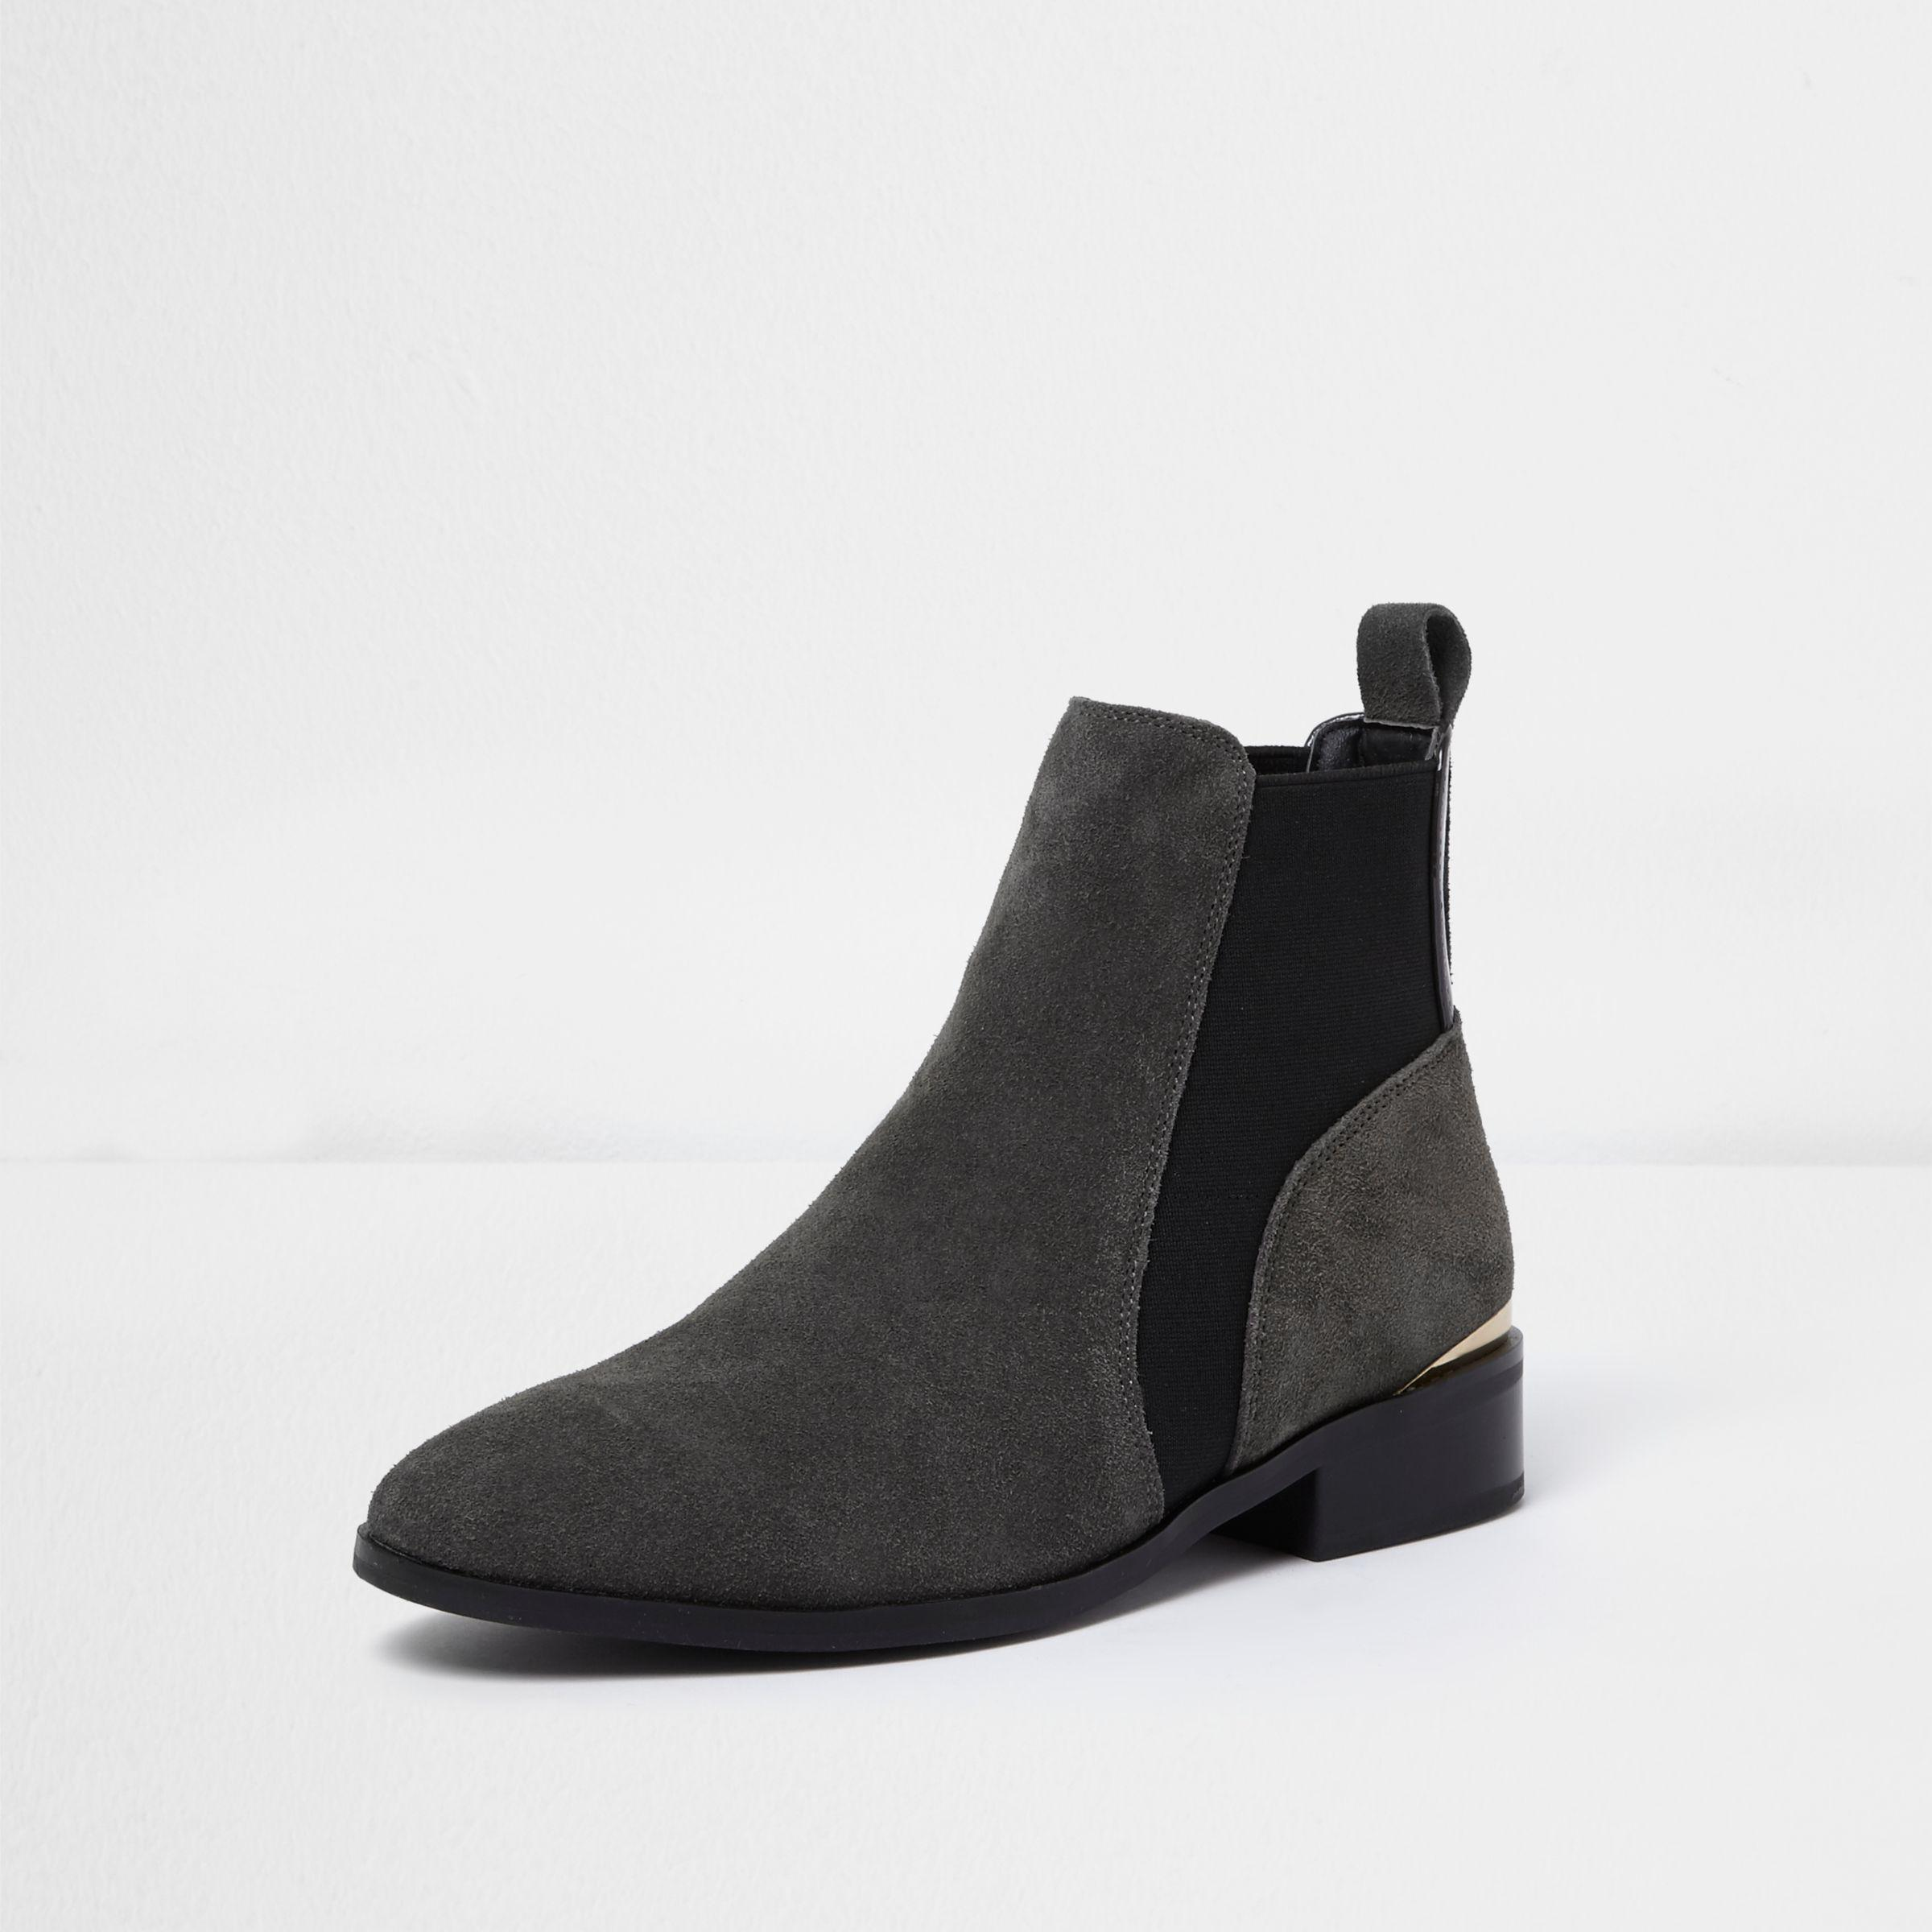 7c985b1c89588 Lyst - River Island Grey Wide Fit Suede Gold Trim Chelsea Boots in Gray